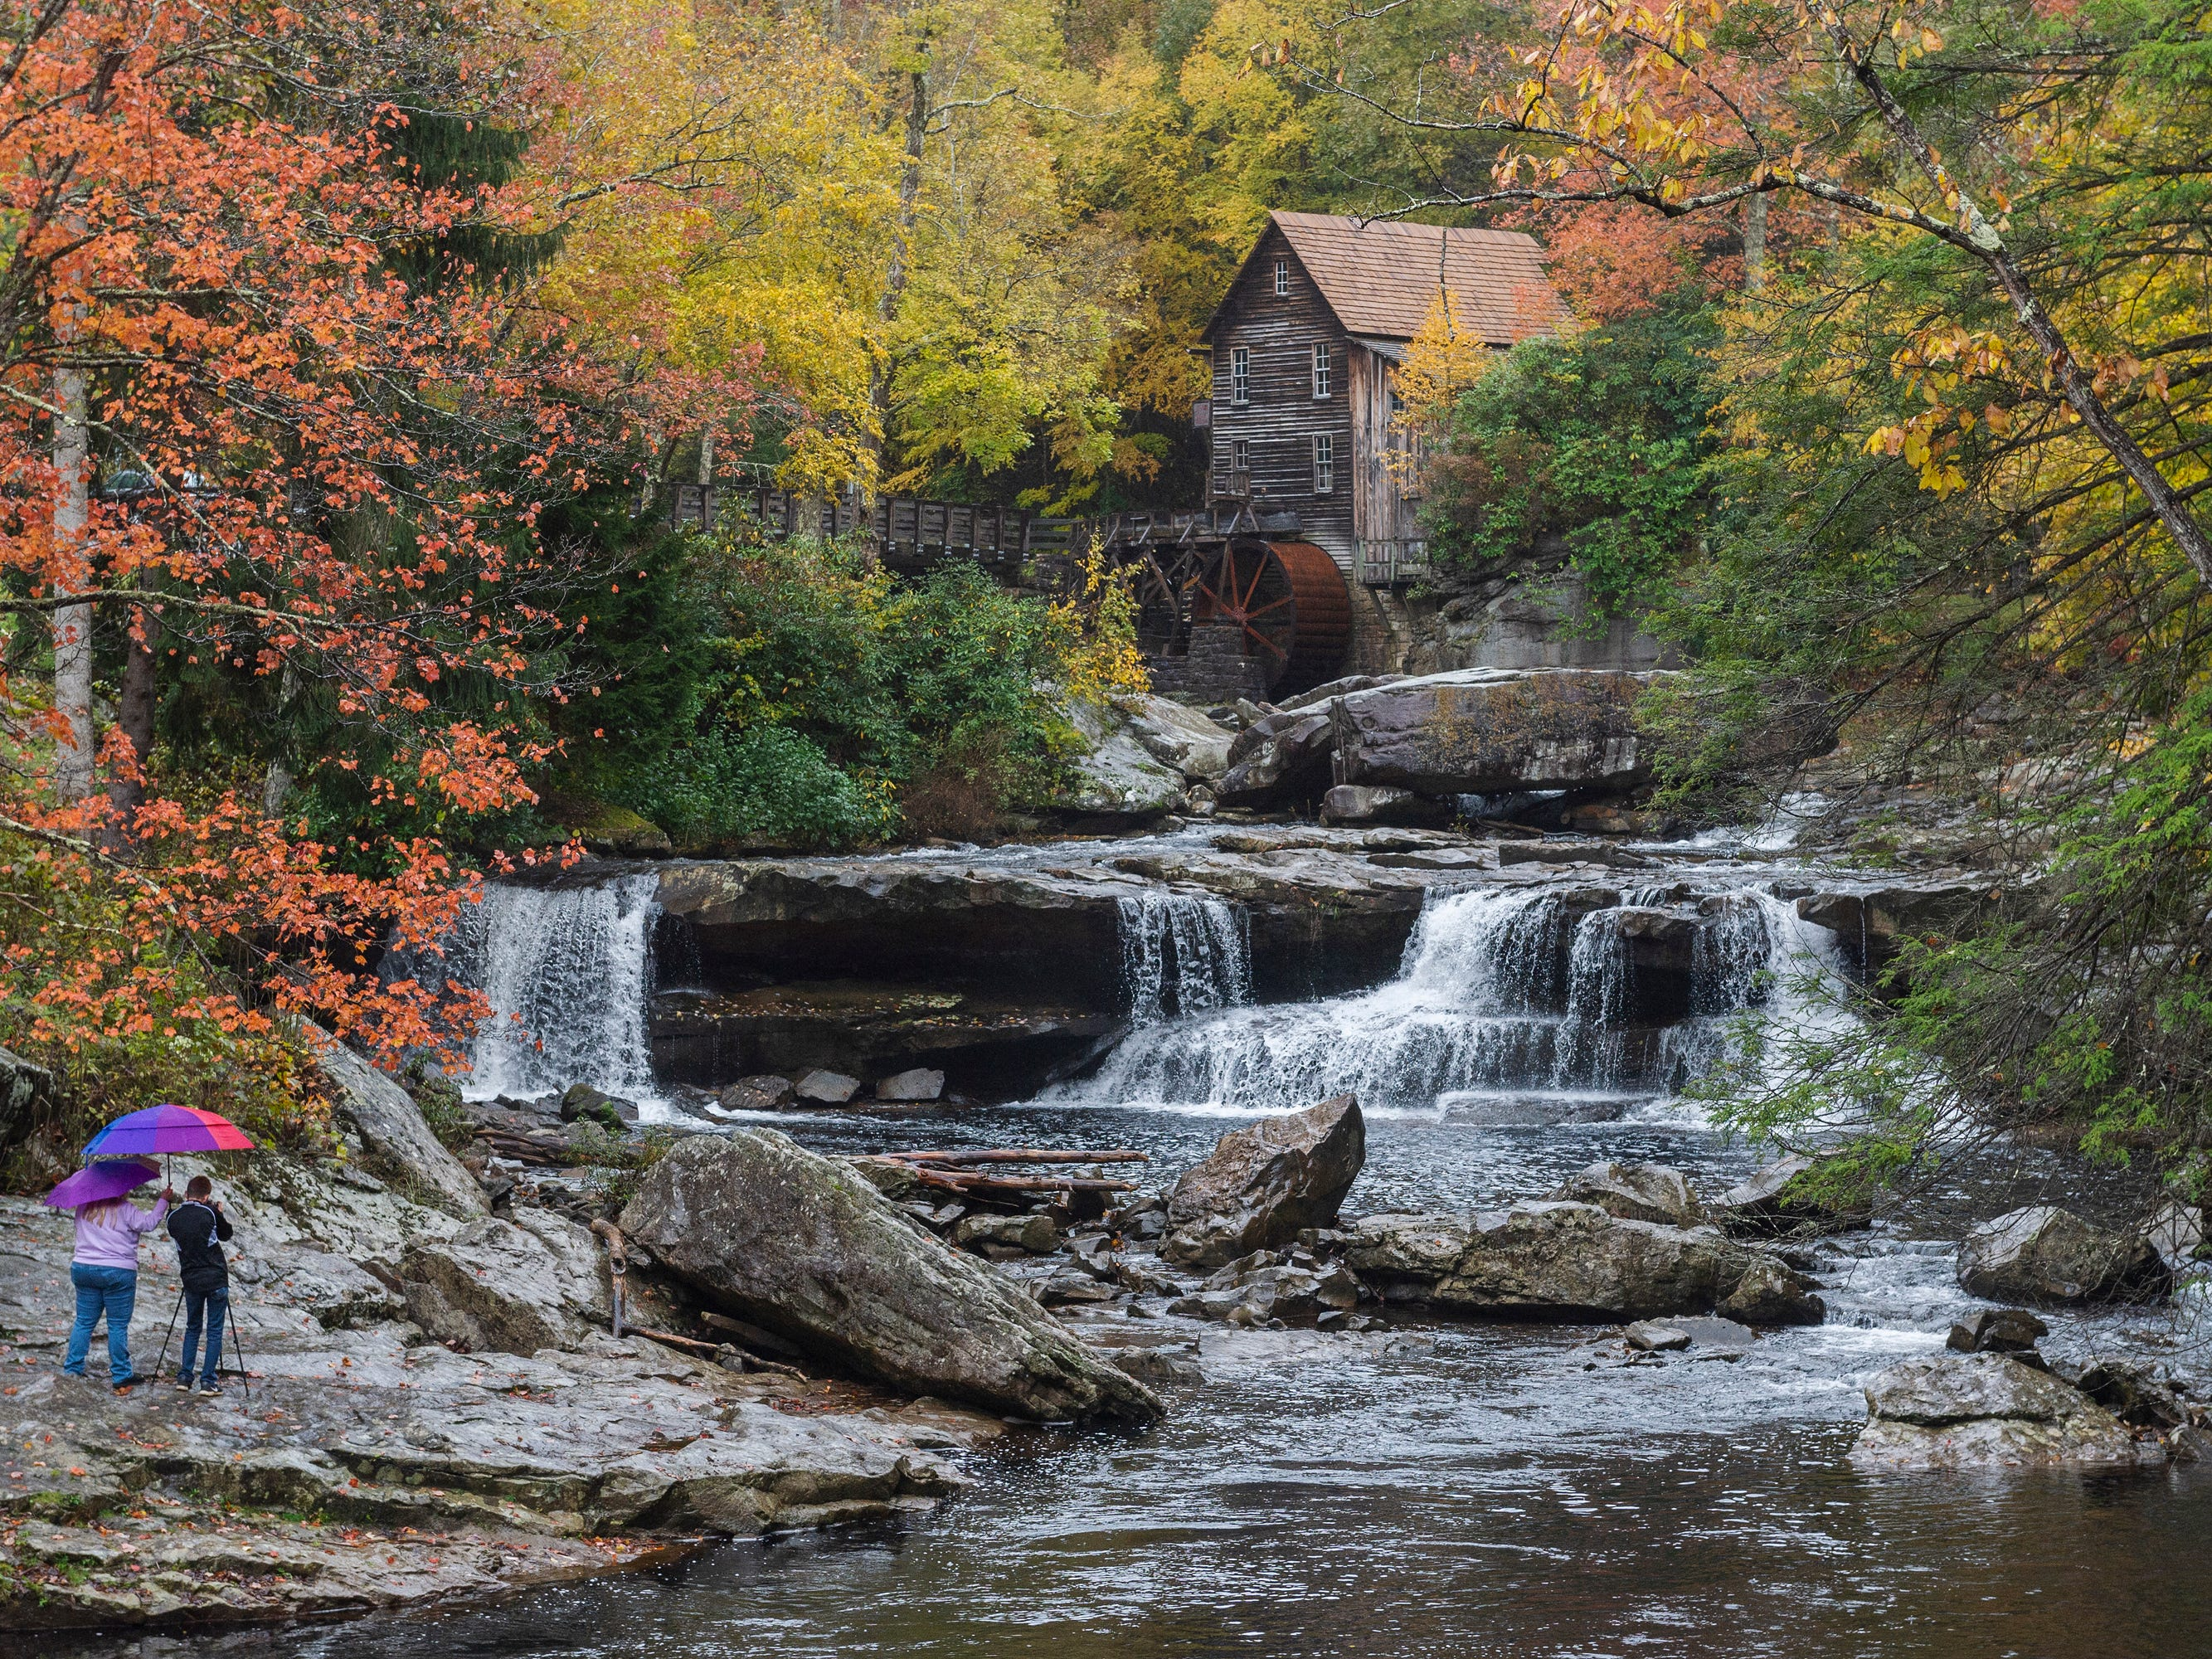 Visitors snap photos on a rainy day amidst fall colors surrounding the Glade Creek Grist Mill inside Babcock State Park near Clifftop, W.Va., on Saturday, Oct. 27, 2018.